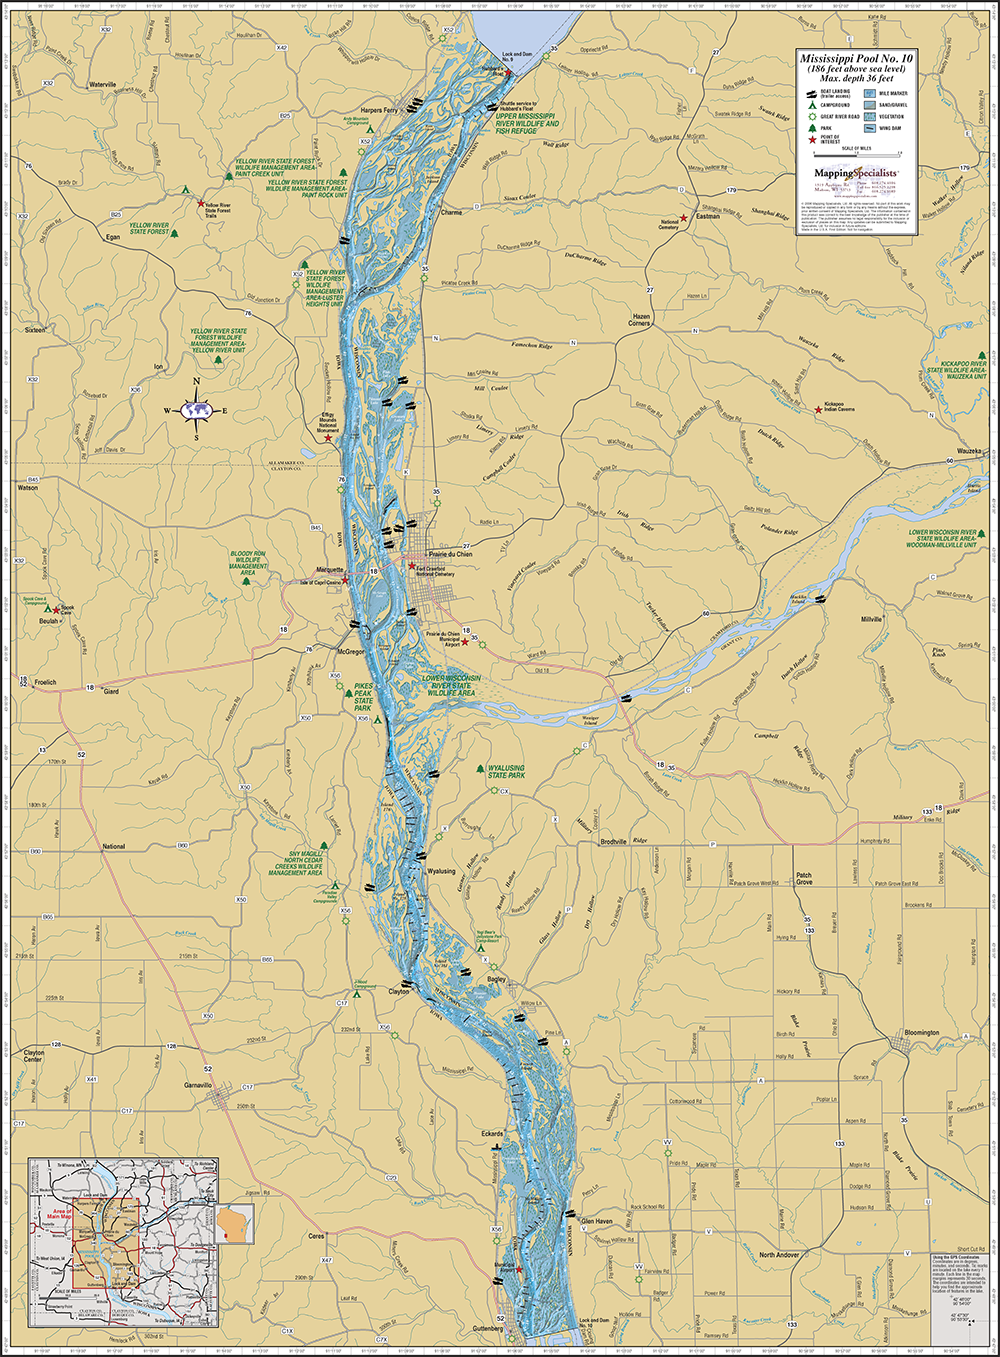 Mississippi River Wisconsin Map Mississippi River (Pool 10) Wall Map